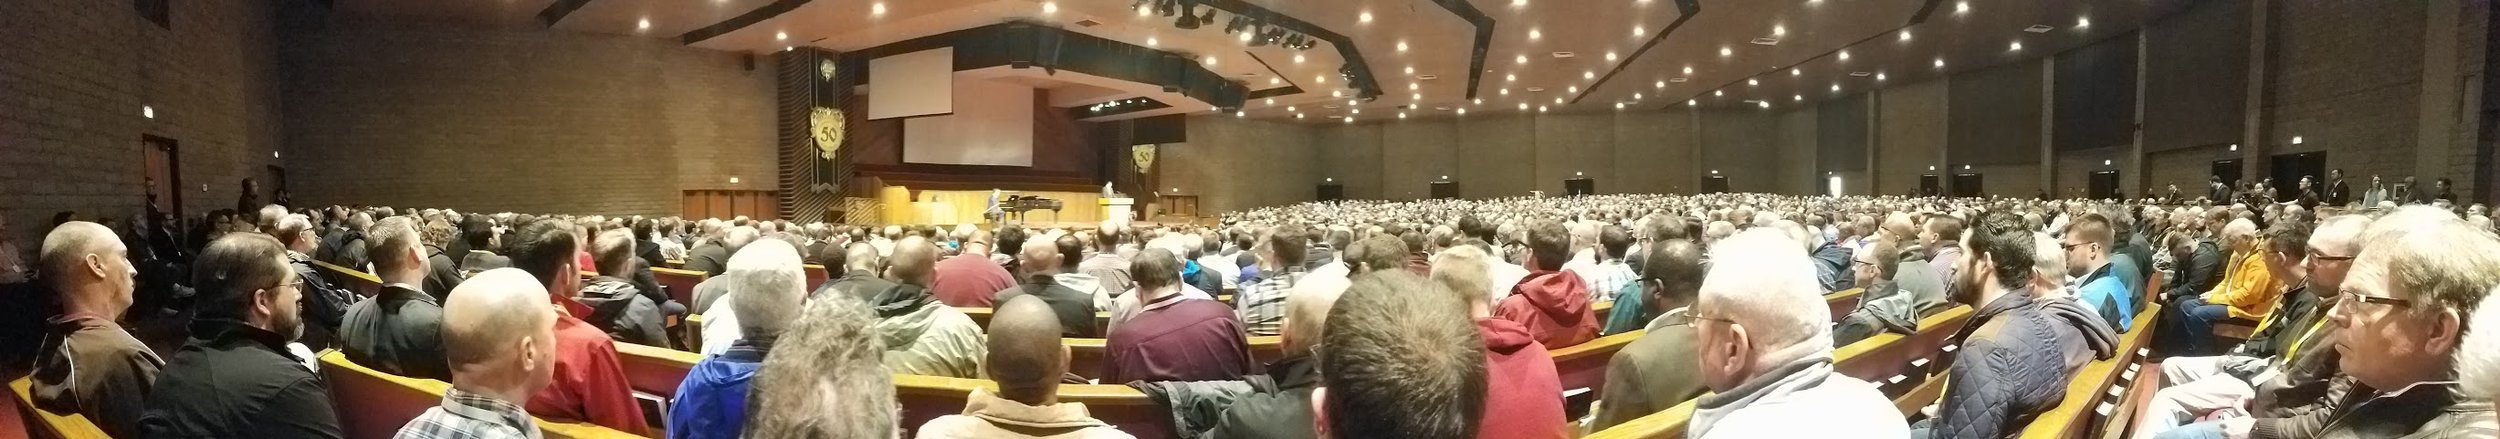 Shepherds Conference 2019 3.jpg